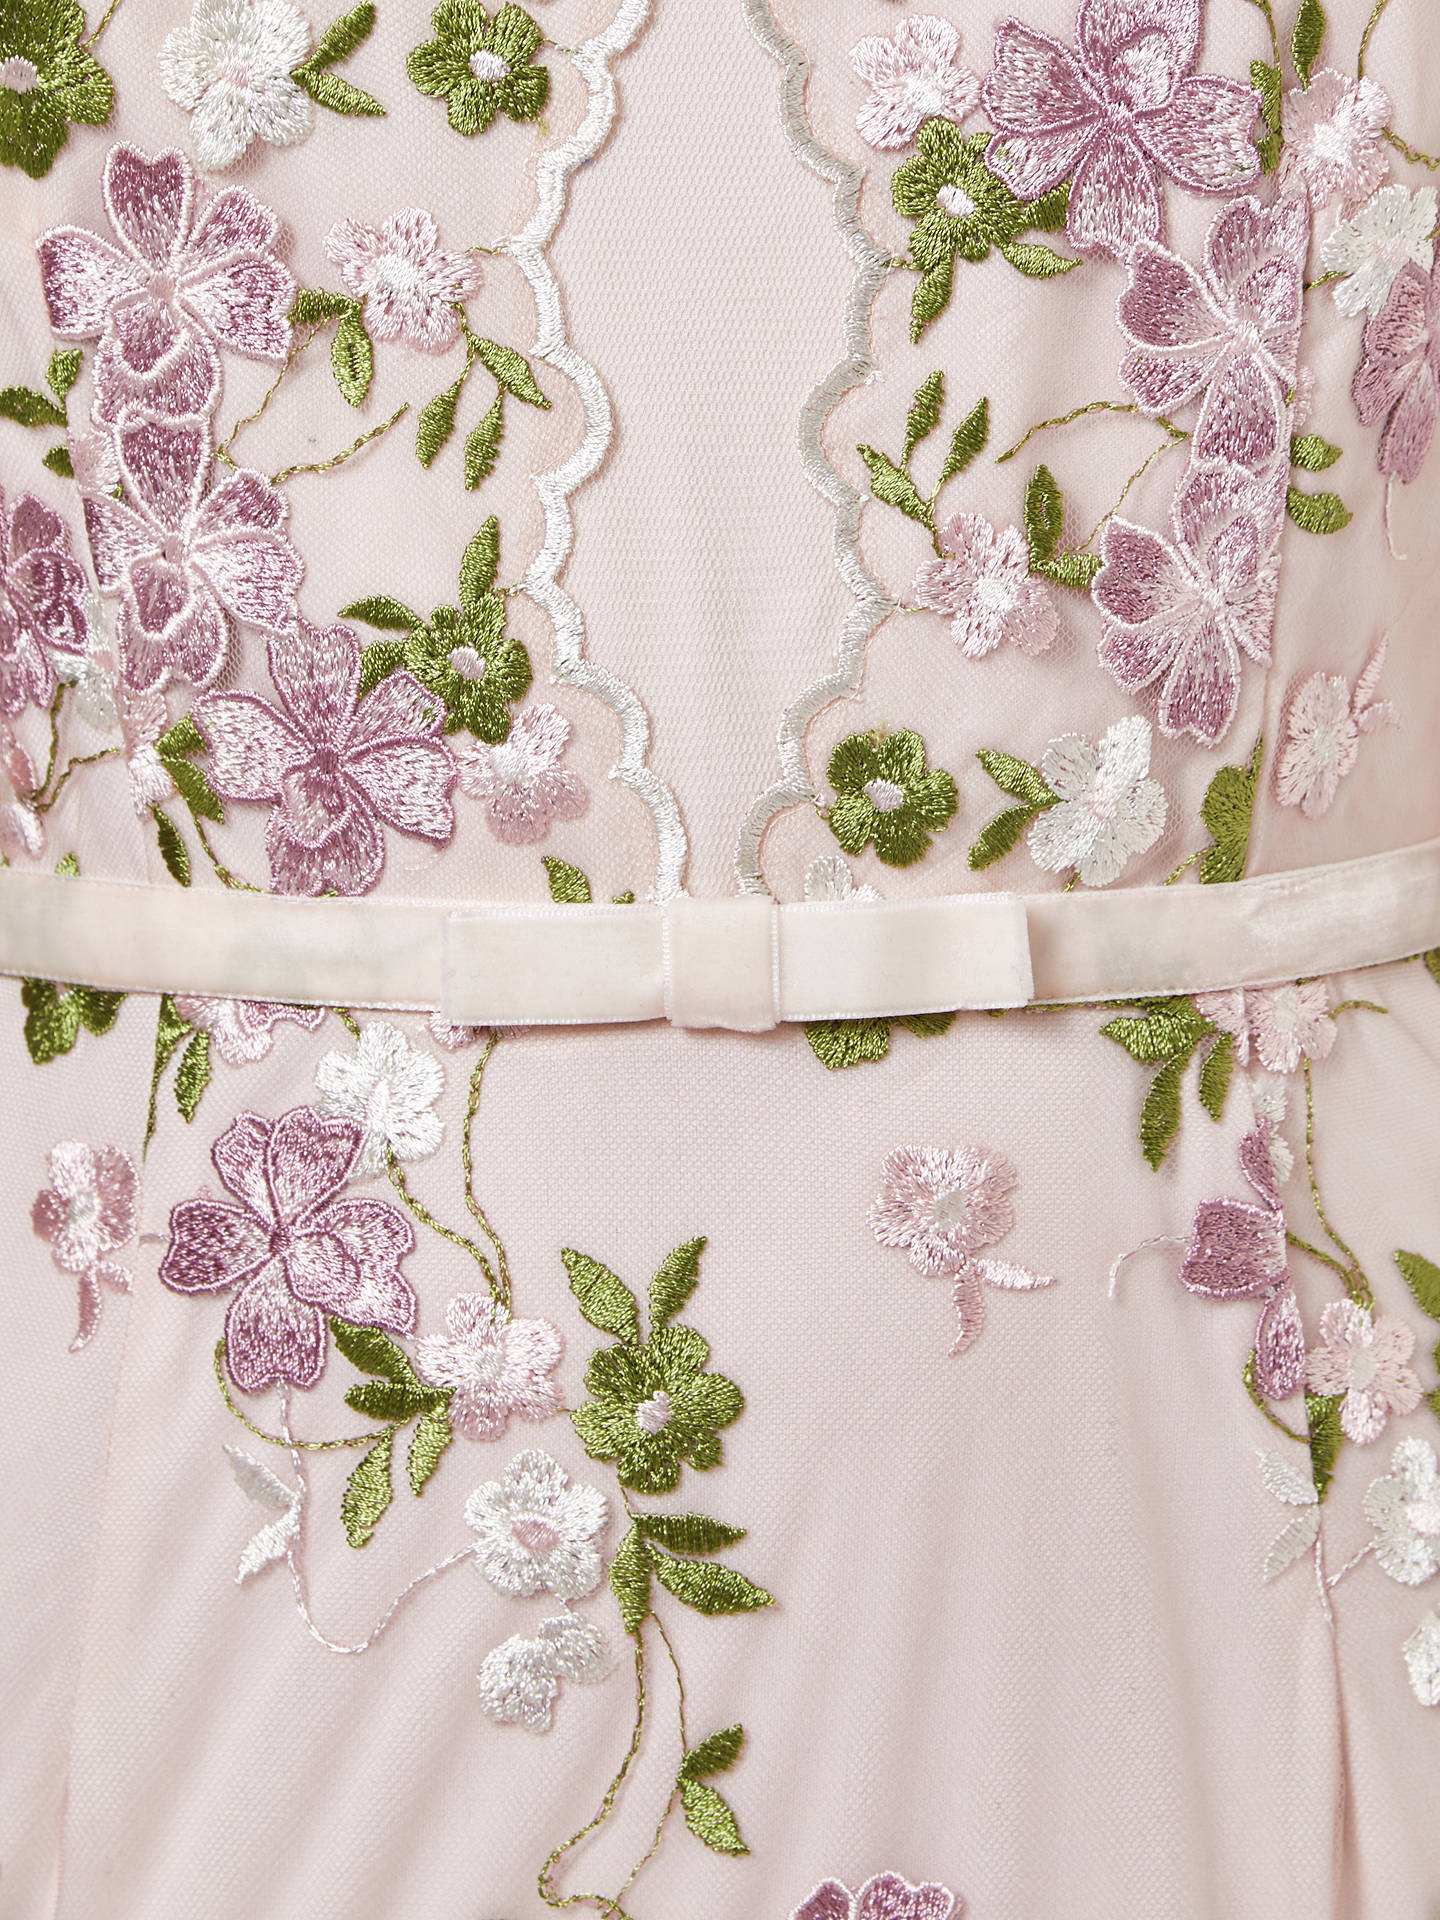 BuyAdrianna Papell Embroidered Dress, Blush, 18 Online at johnlewis.com